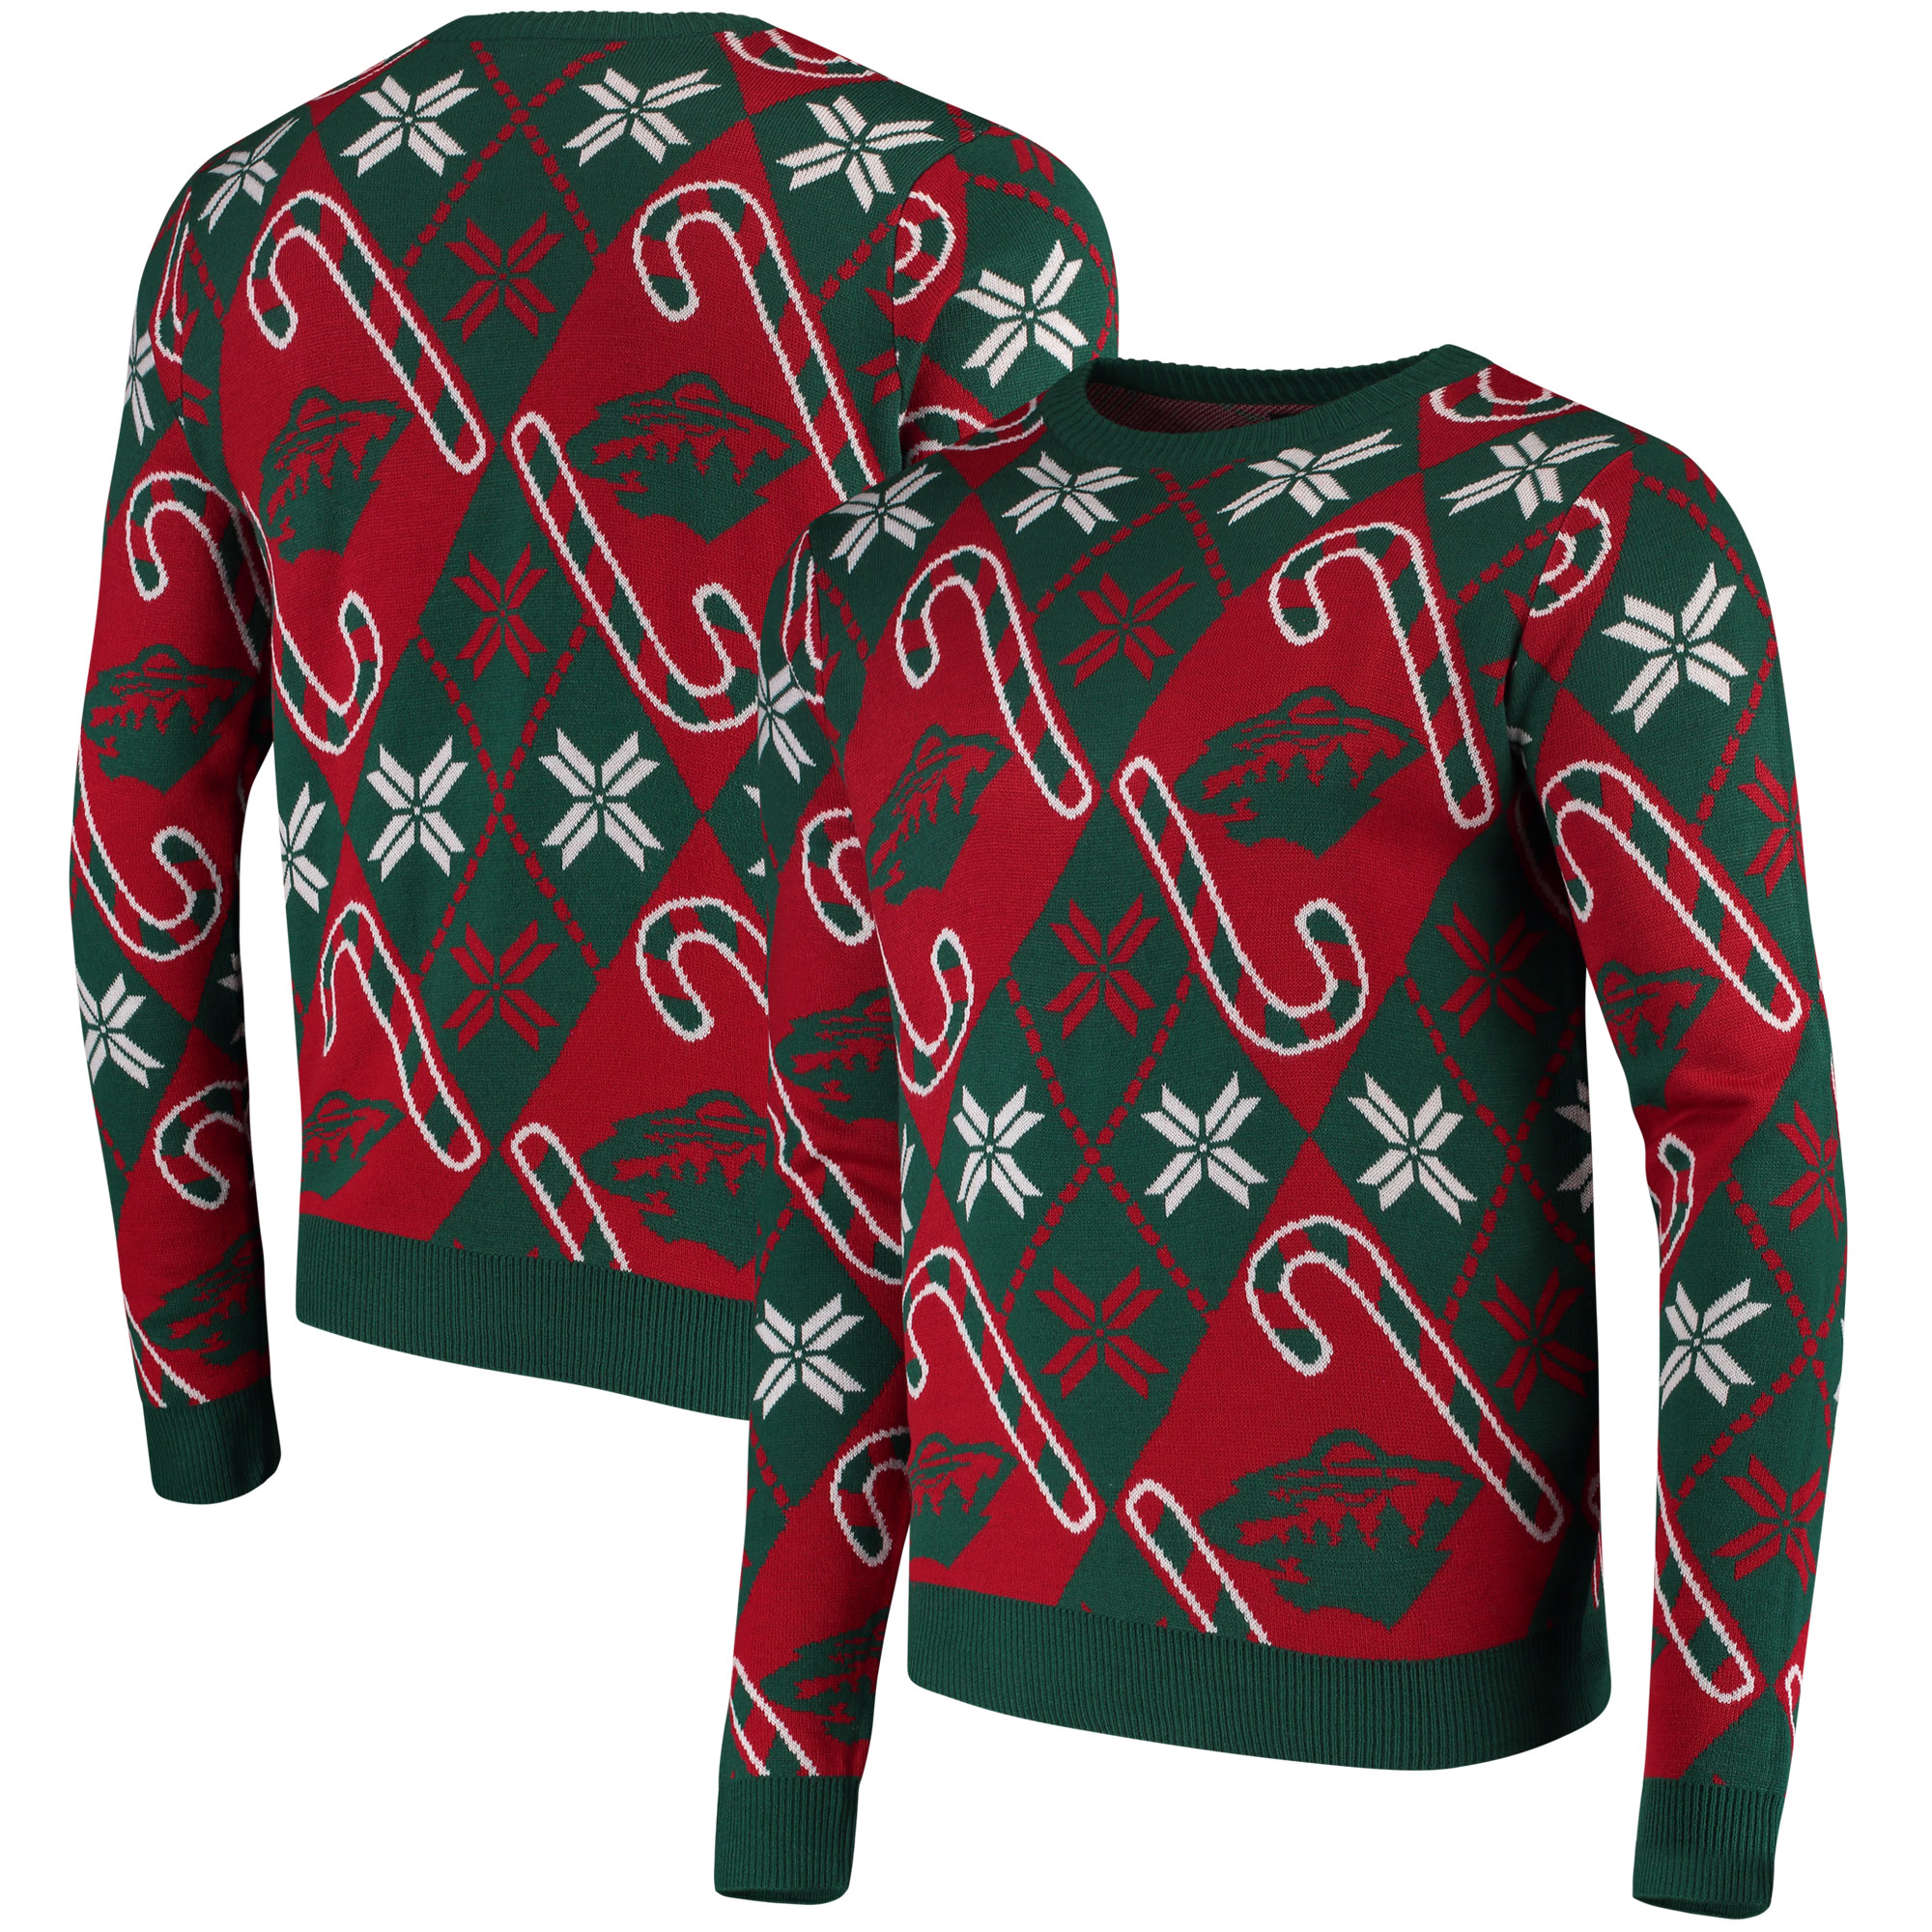 Minnesota Wild Candy Cane Ugly Sweater - Green